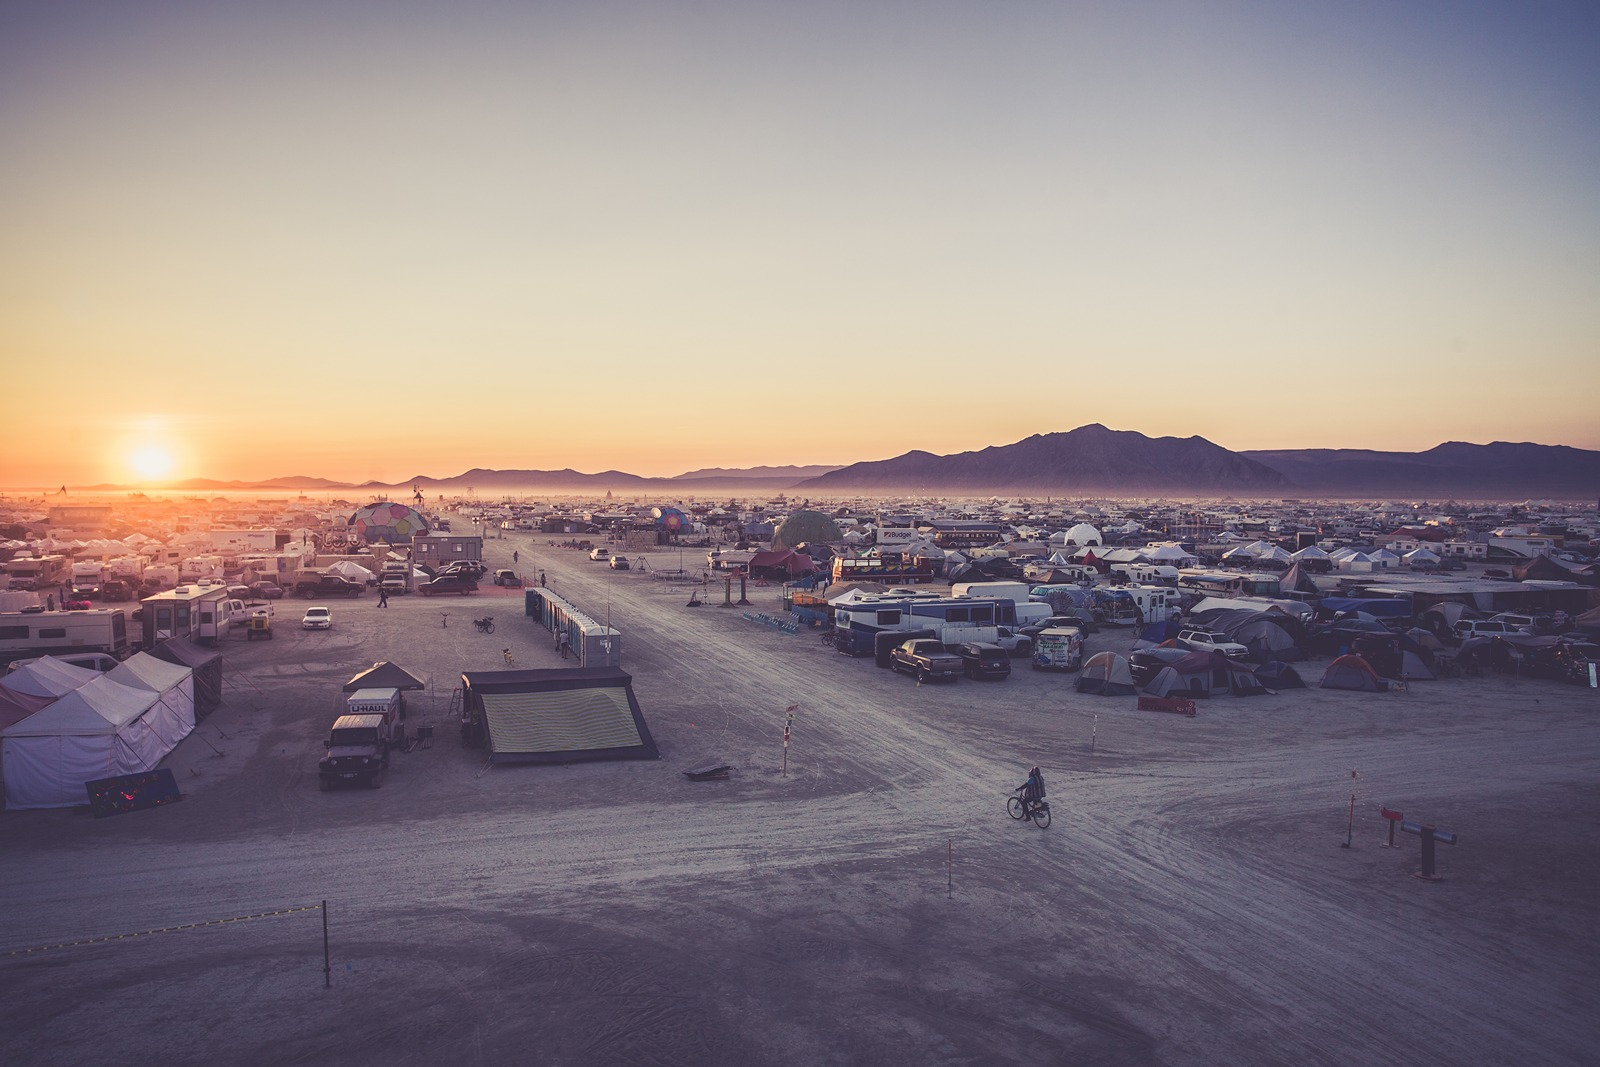 Burning Man - First rising sun